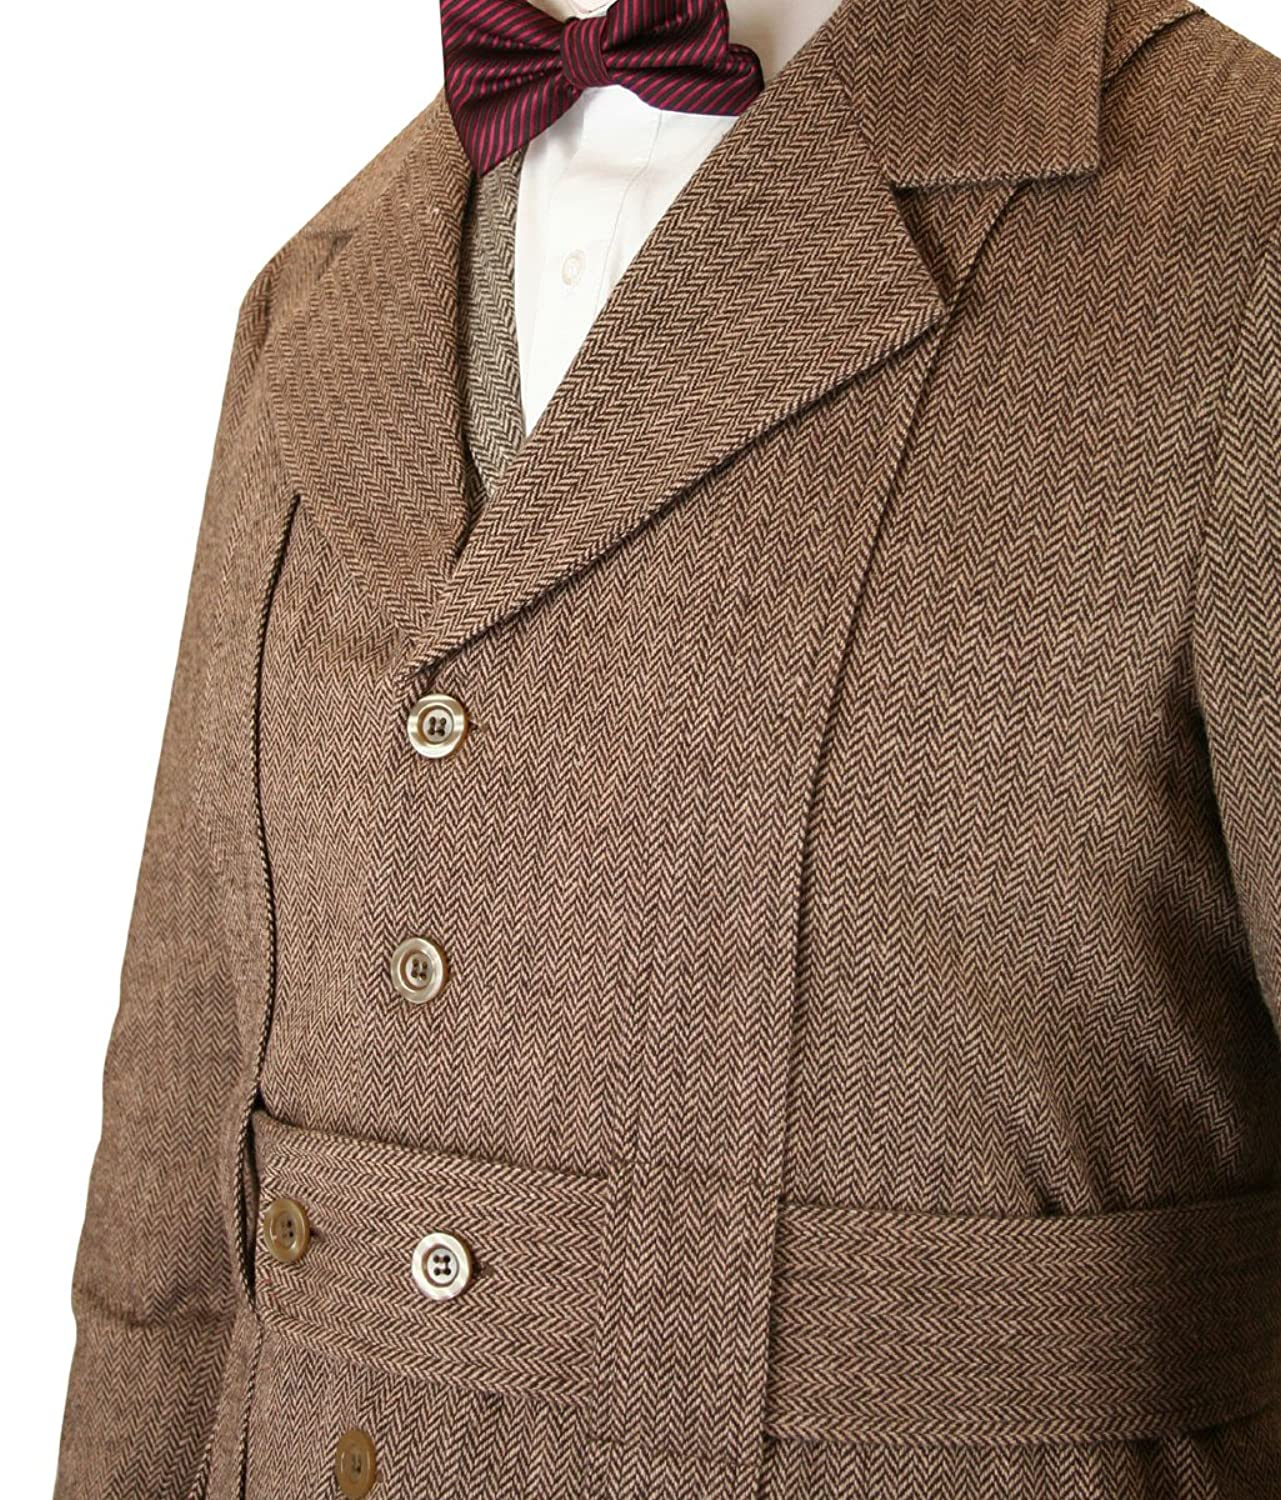 1900s Edwardian Men's Suits and Coats Historical Emporium Mens Norfolk Wool Blend Herringbone Tweed Jacket $149.95 AT vintagedancer.com